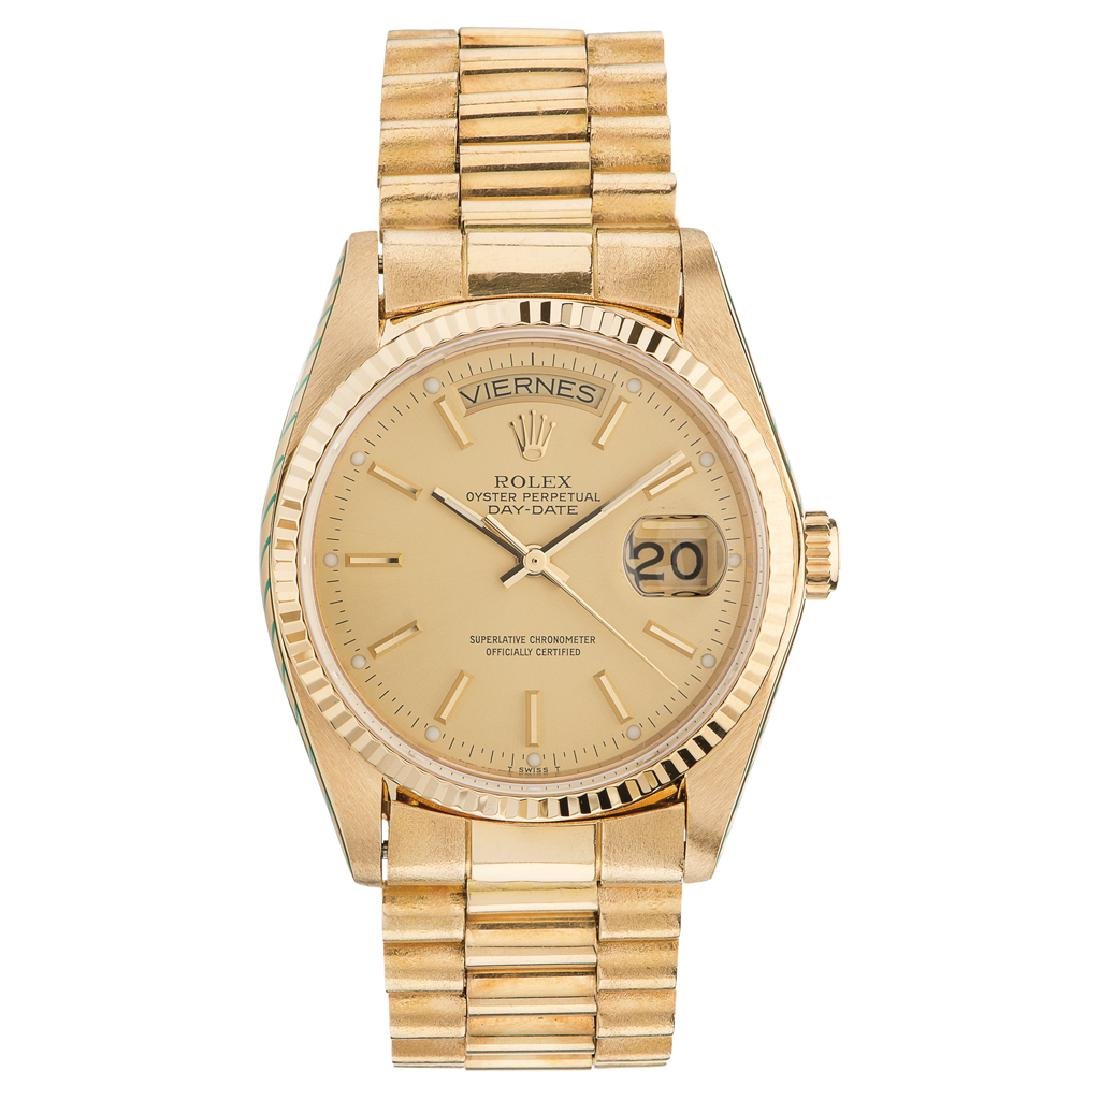 ROLEX OYSTER PERPETUAL DAY - DATE WRISTWATCH REF.